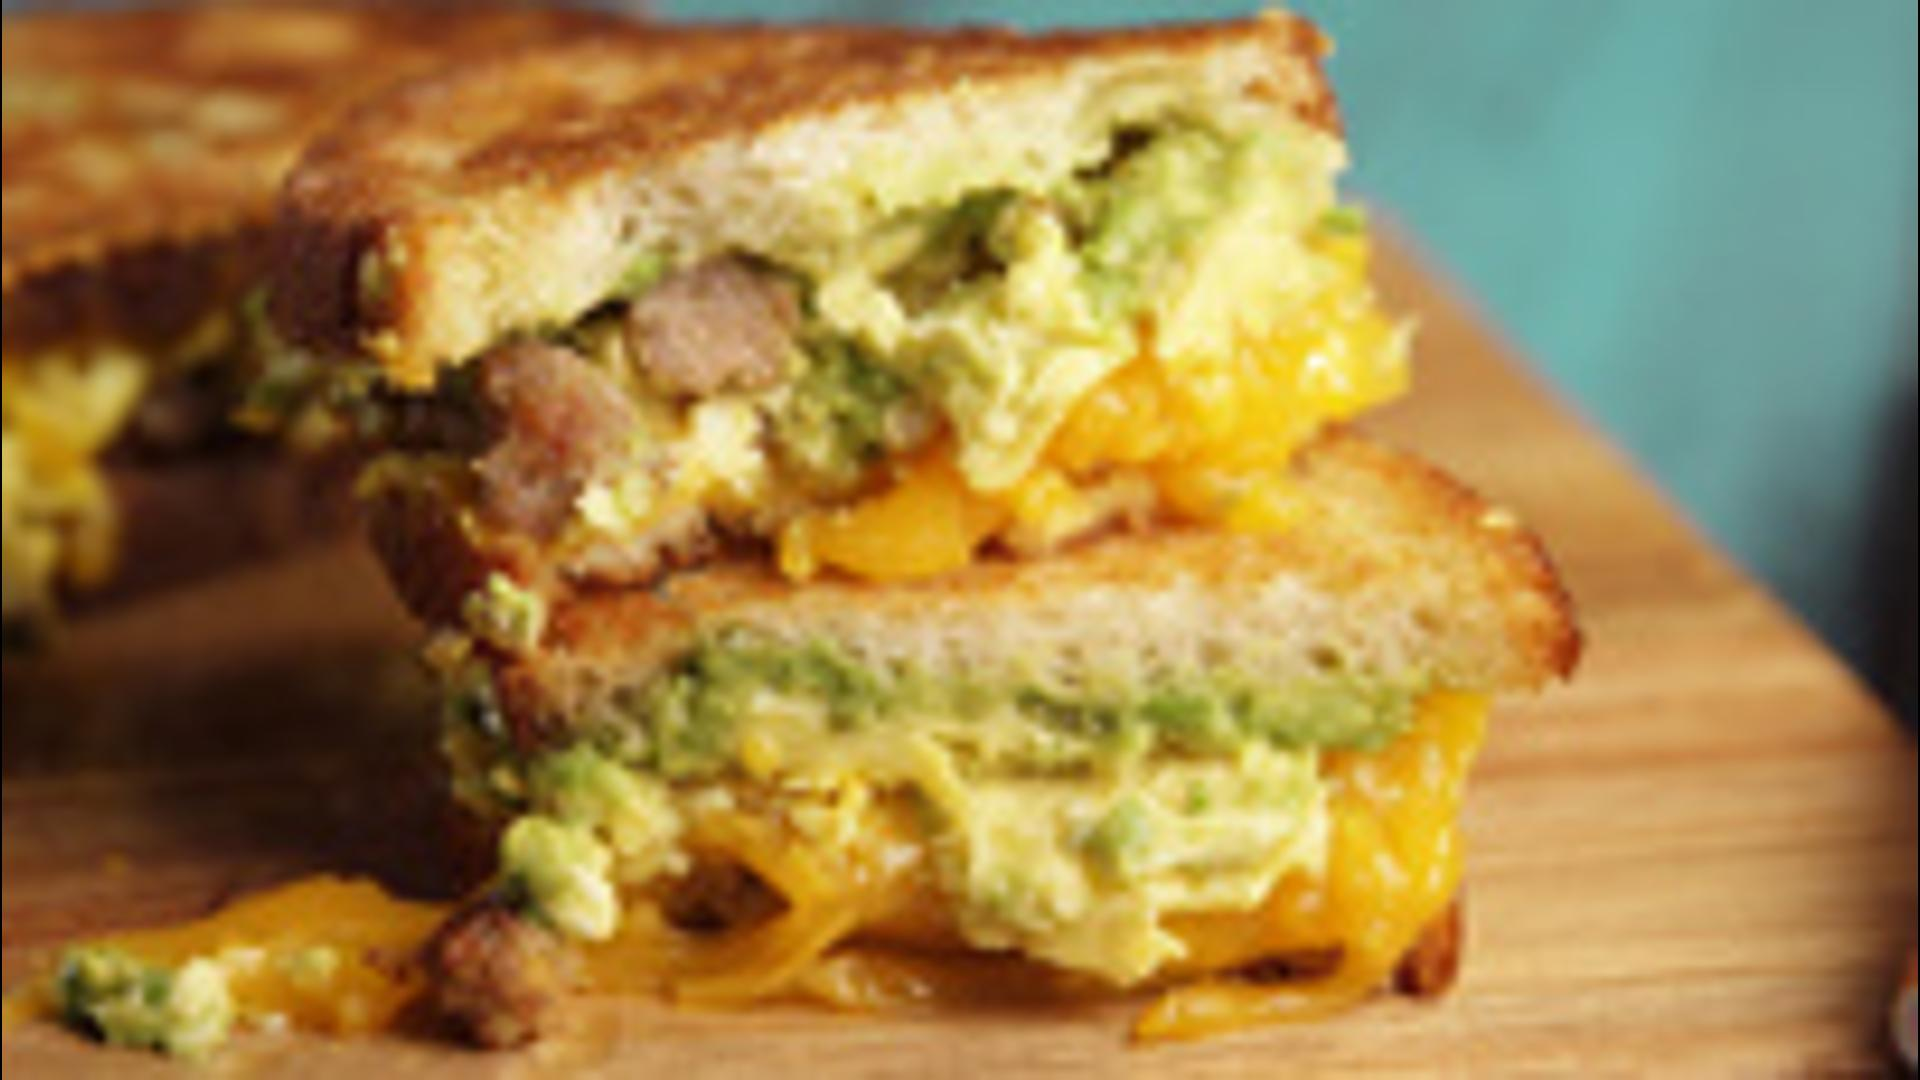 Breakfast Sandwiches That Make Us Wonder Why We Ever Eat Anything Else | HuffPost Life